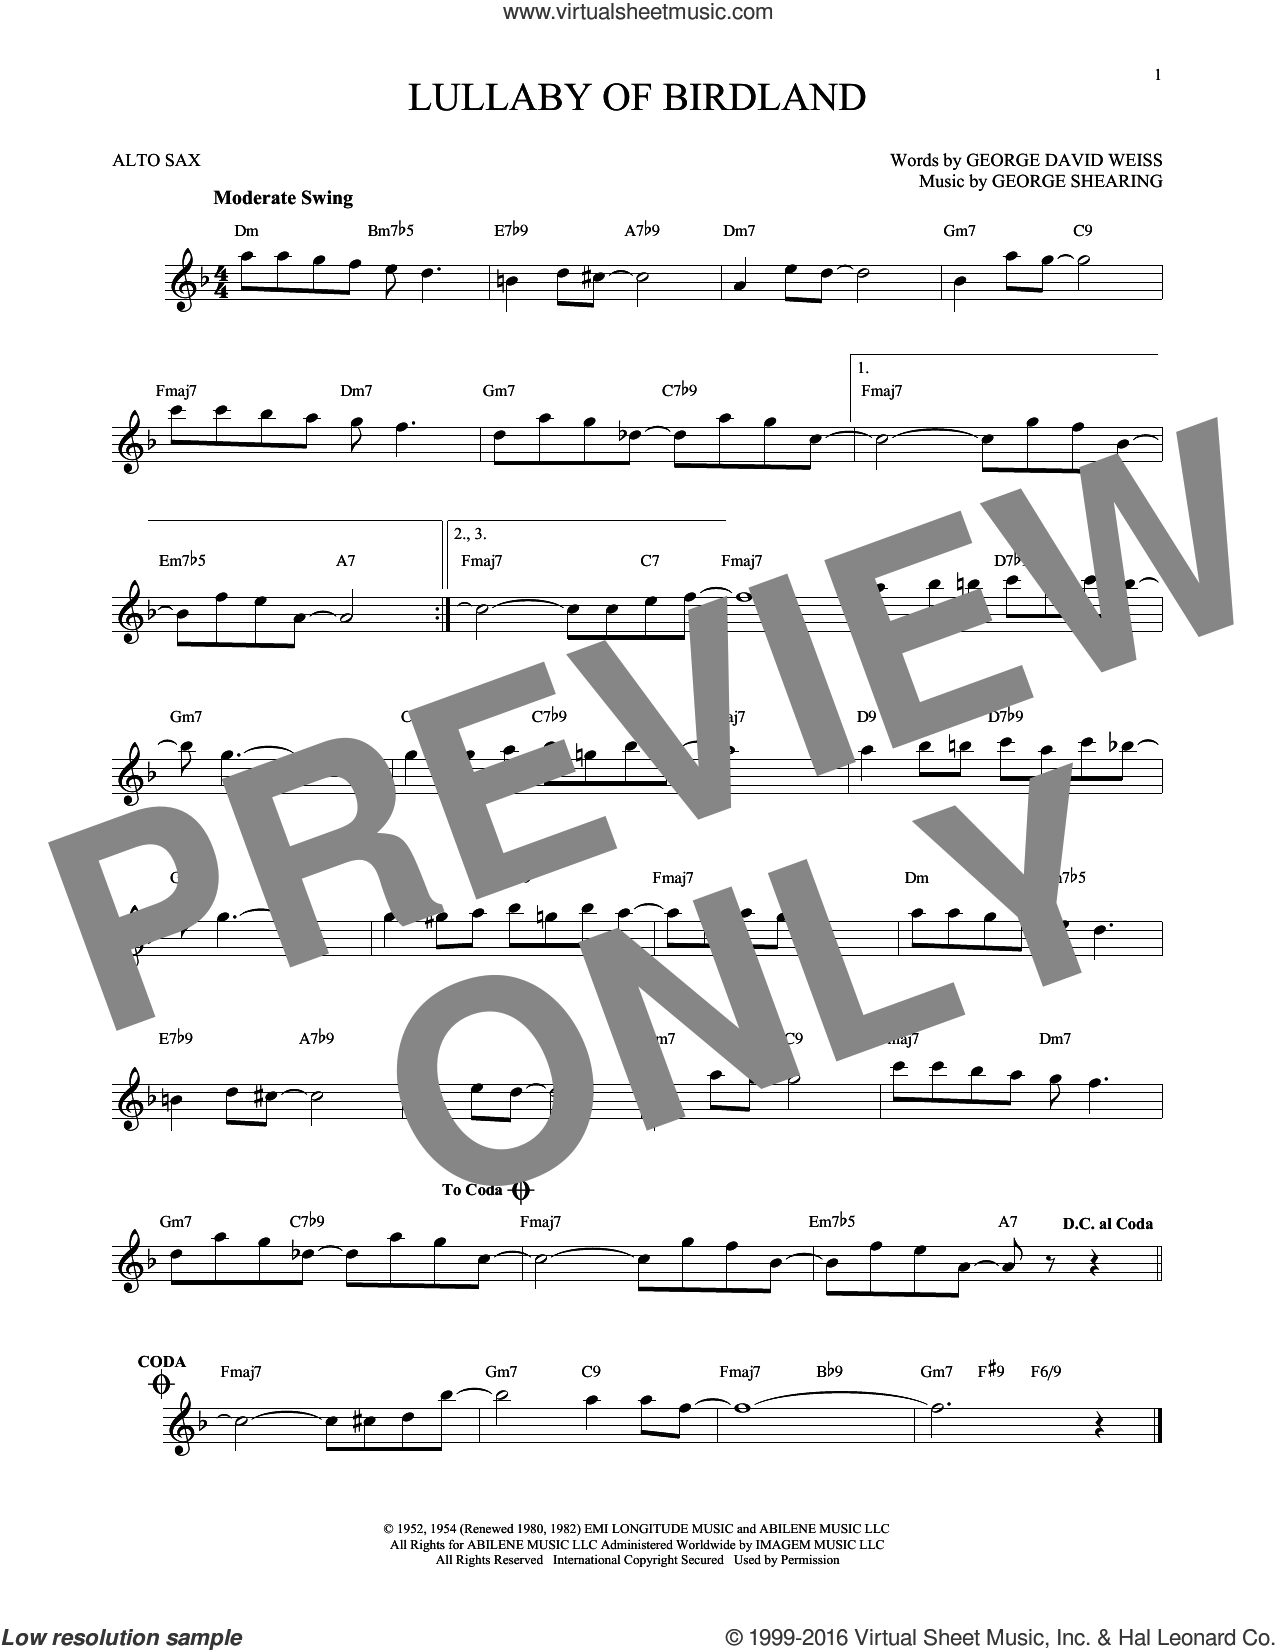 Lullaby Of Birdland sheet music for alto saxophone solo by George David Weiss and George Shearing, intermediate skill level